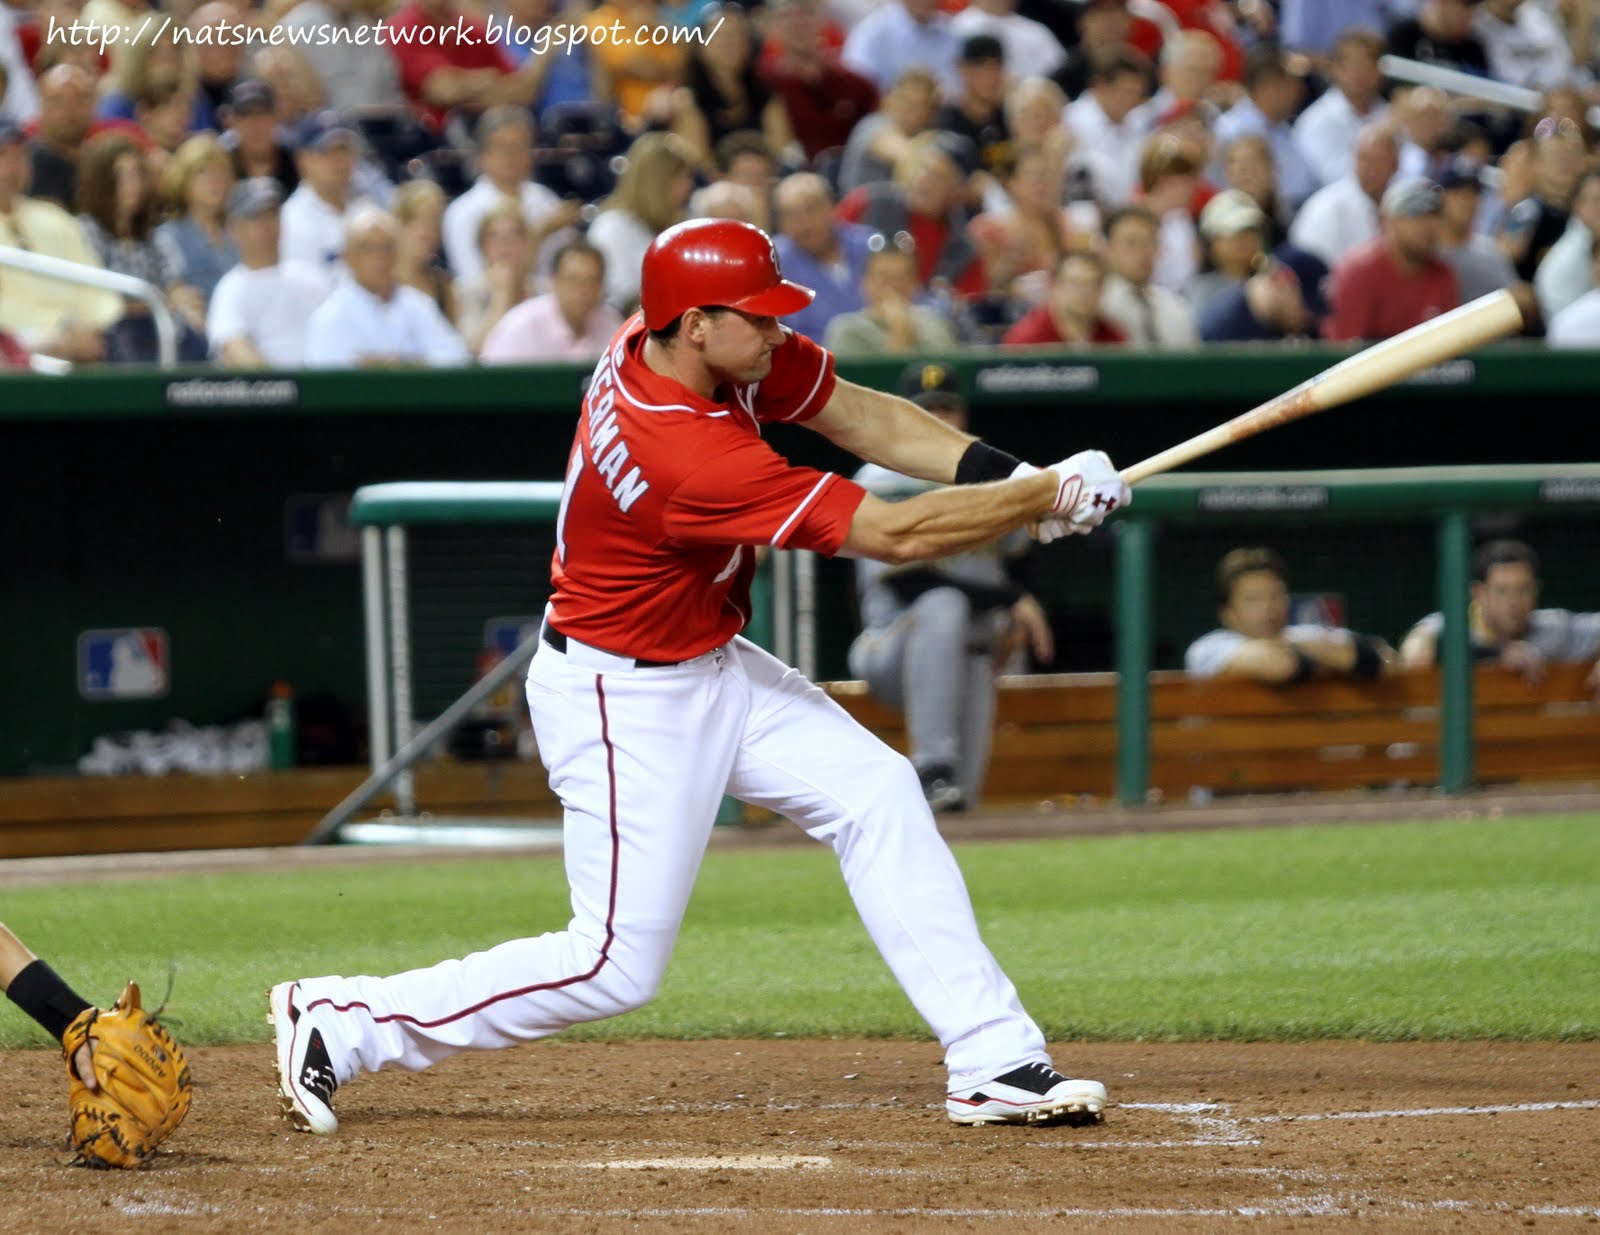 ... NETWORK: Off The Field: Vote RYAN ZIMMERMAN as All-Star Final Vote